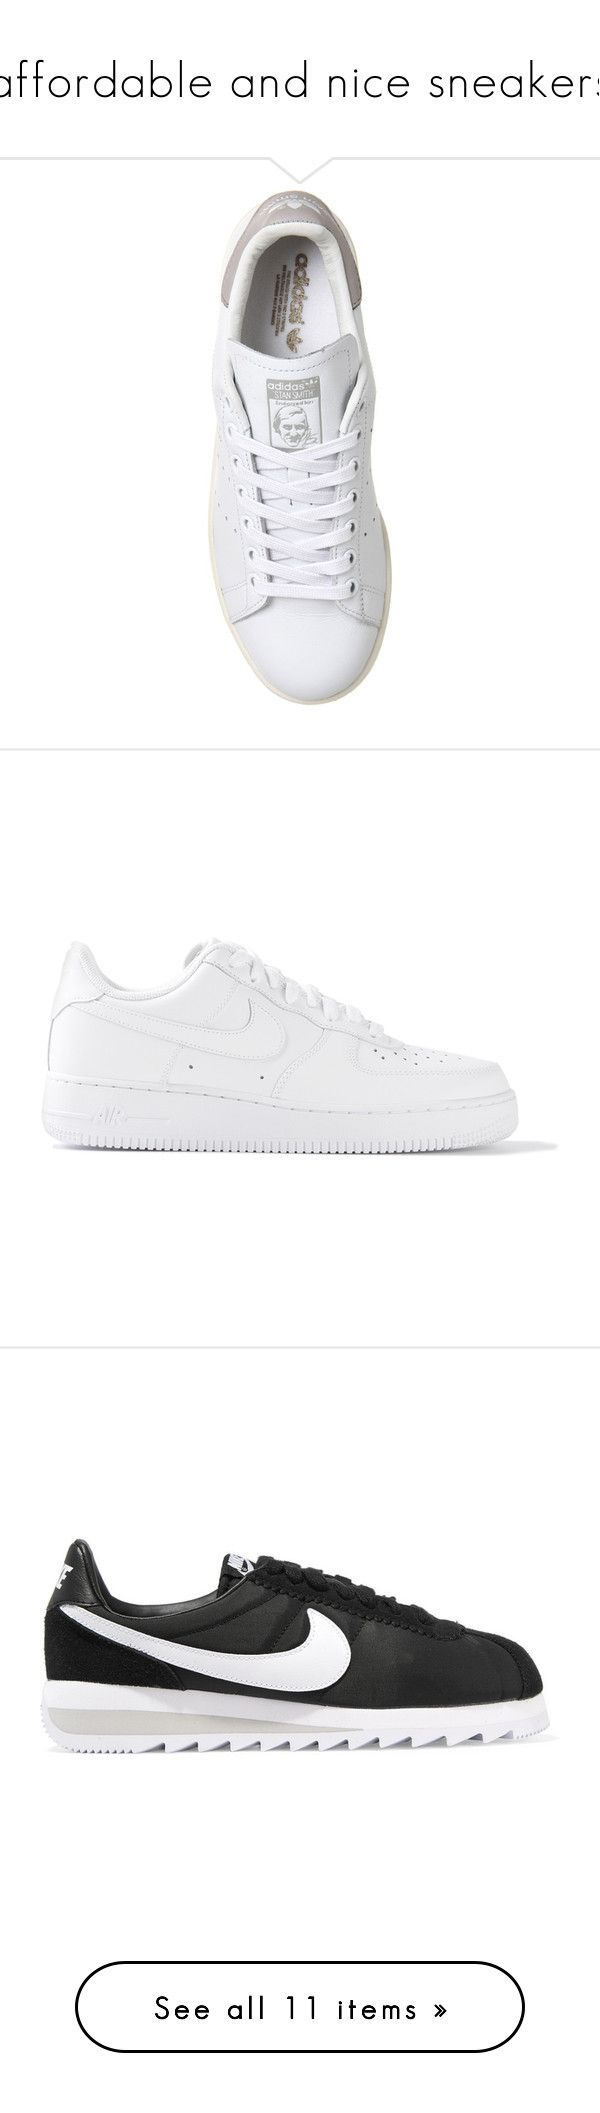 """""""affordable and nice sneakers"""" by blendingtwostyles ❤ liked on Polyvore featuring shoes, sneakers, adidas, striped shoes, stripe shoes, tennis trainer, tennis shoes, nike, chaussures and white"""